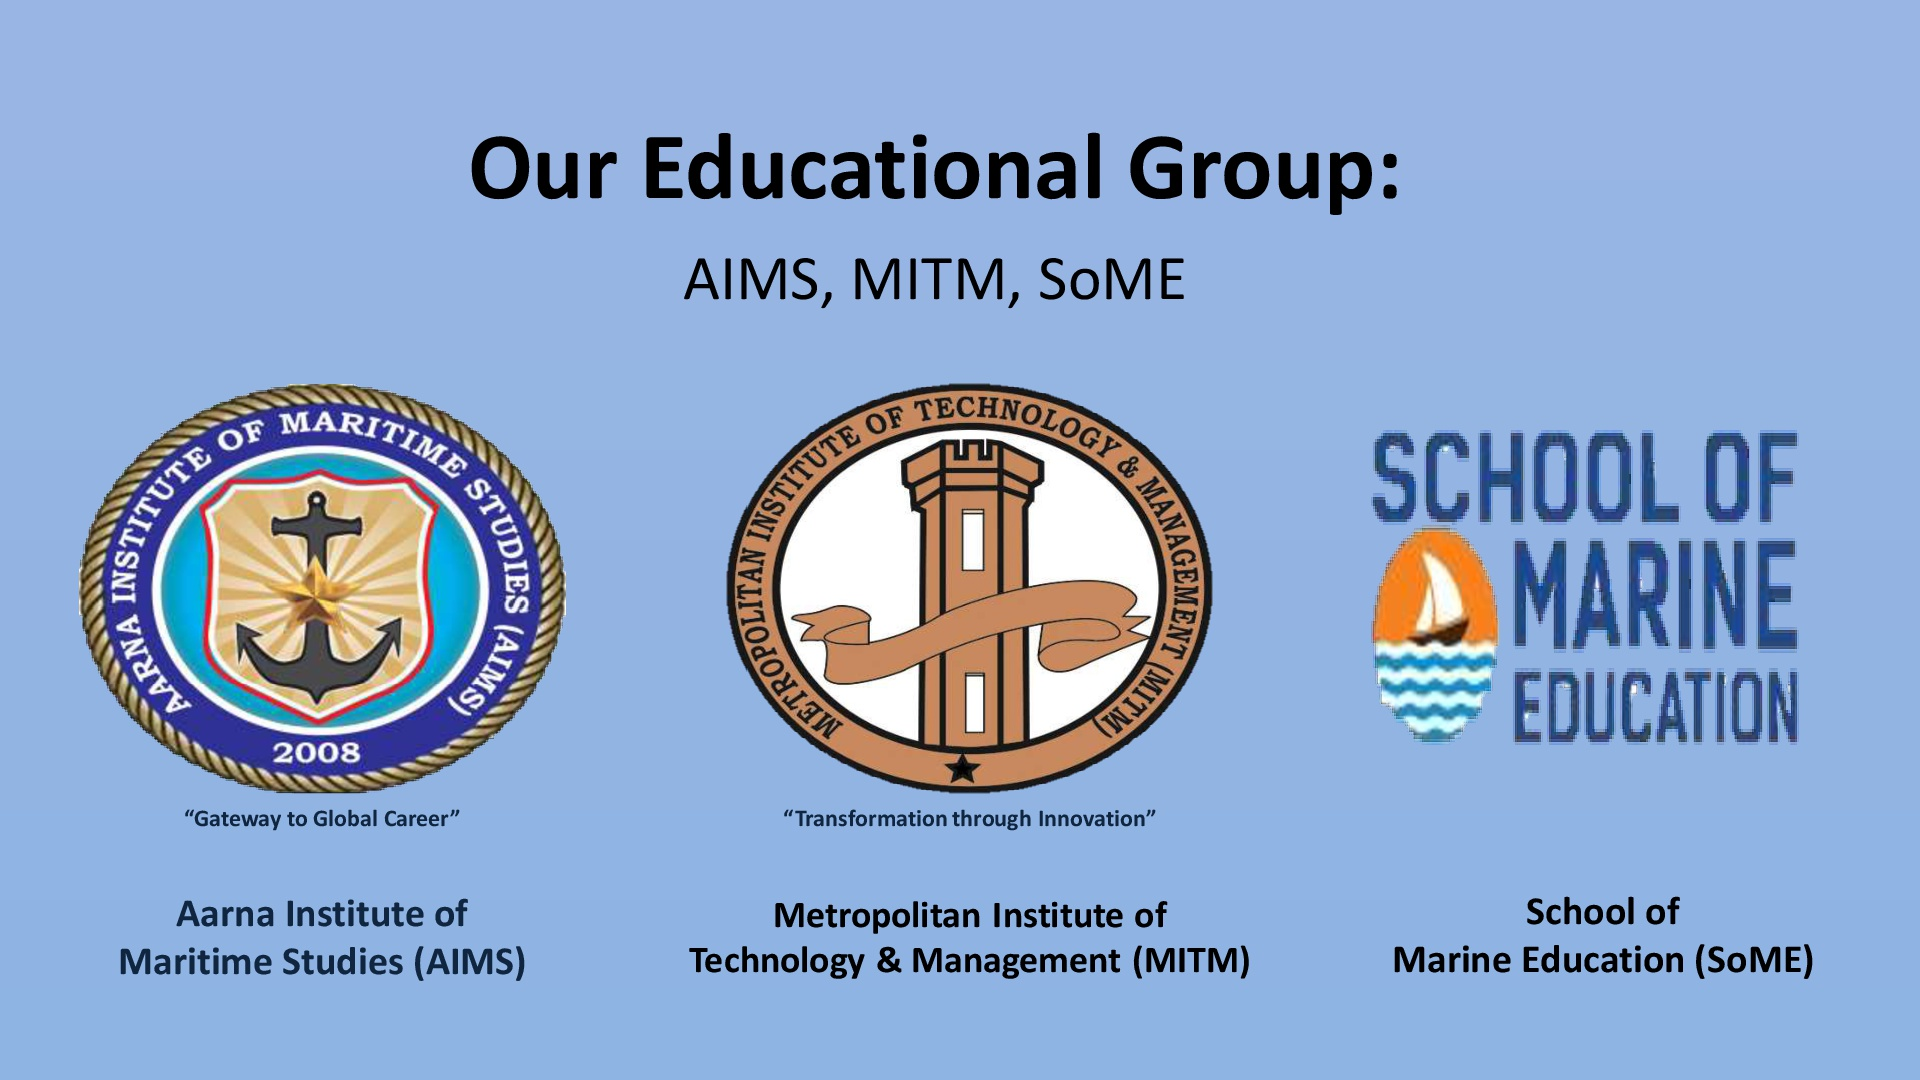 1. OUR EDUCATIONAL GROUP